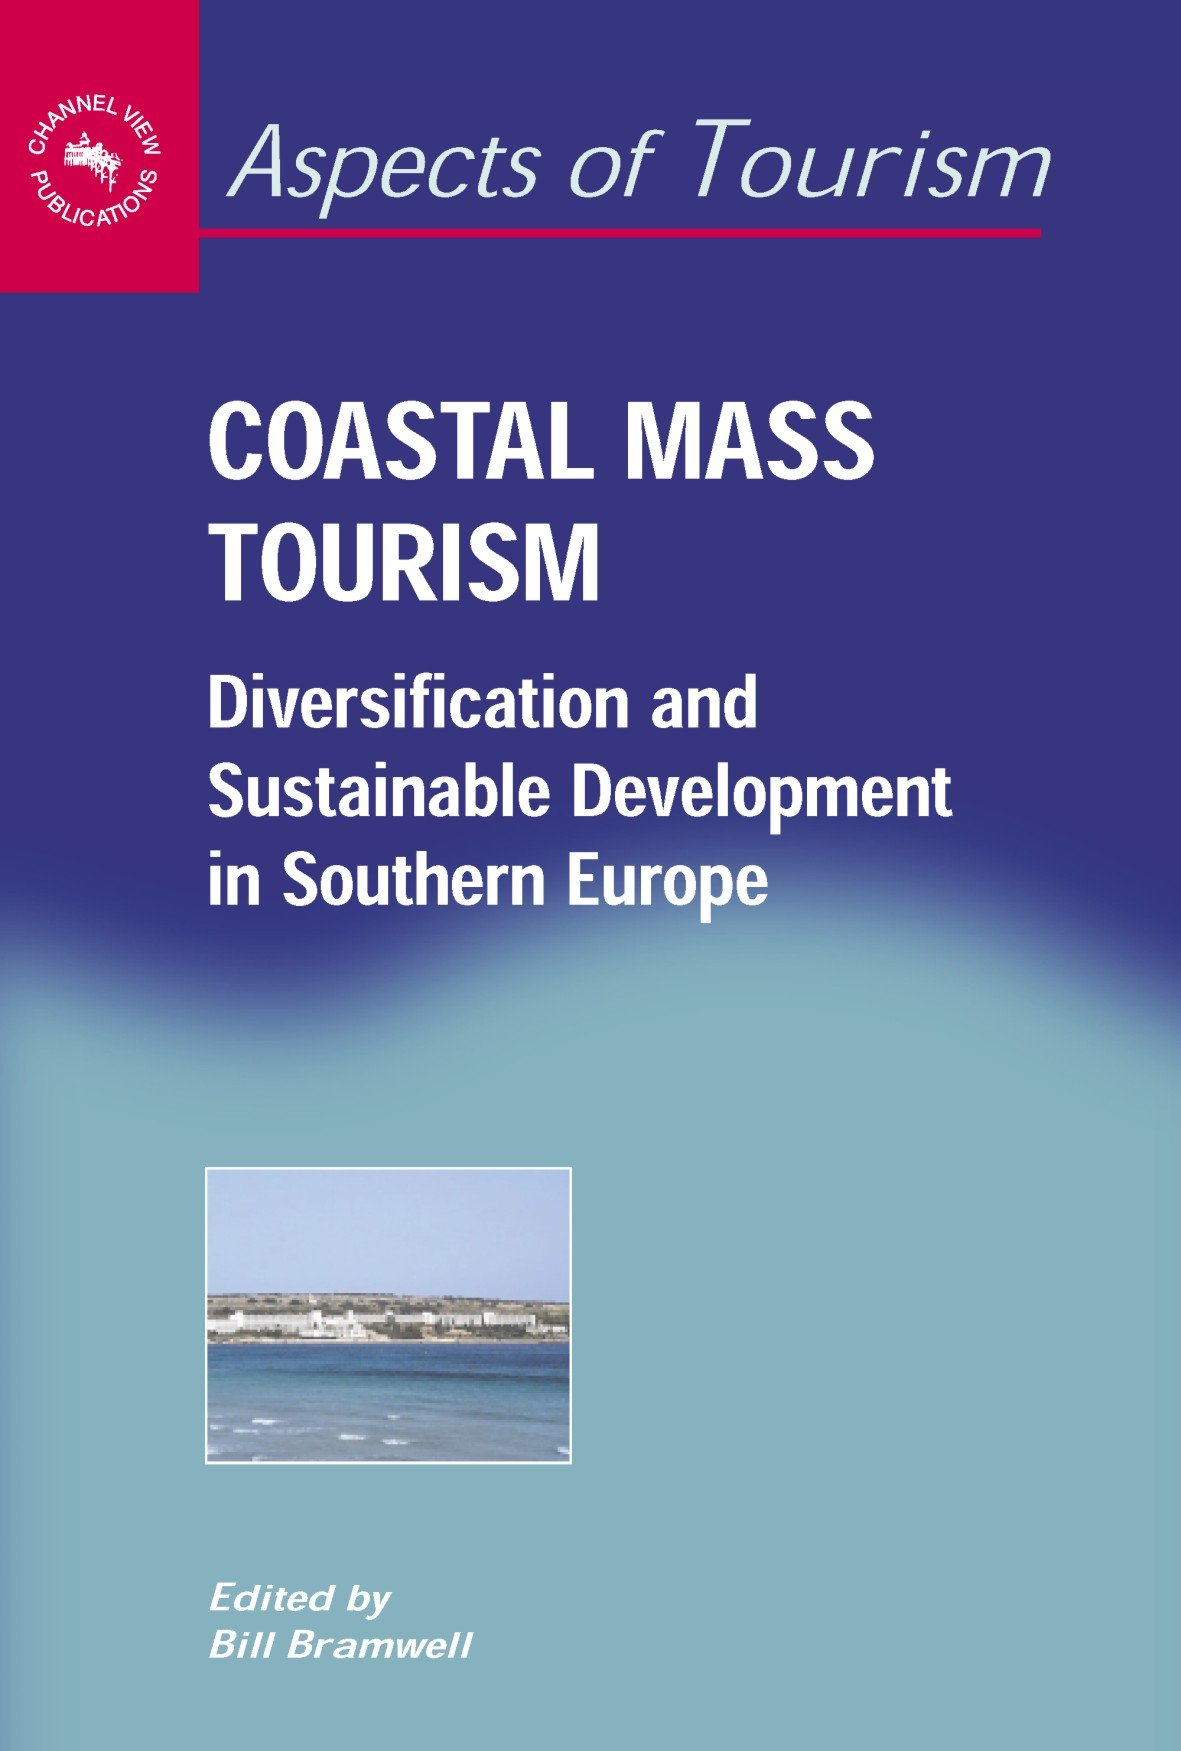 Coastal Mass Tourism: Diversification and Sustainable Development in Southern Europe (Aspects of Tourism) by Channel View Publications